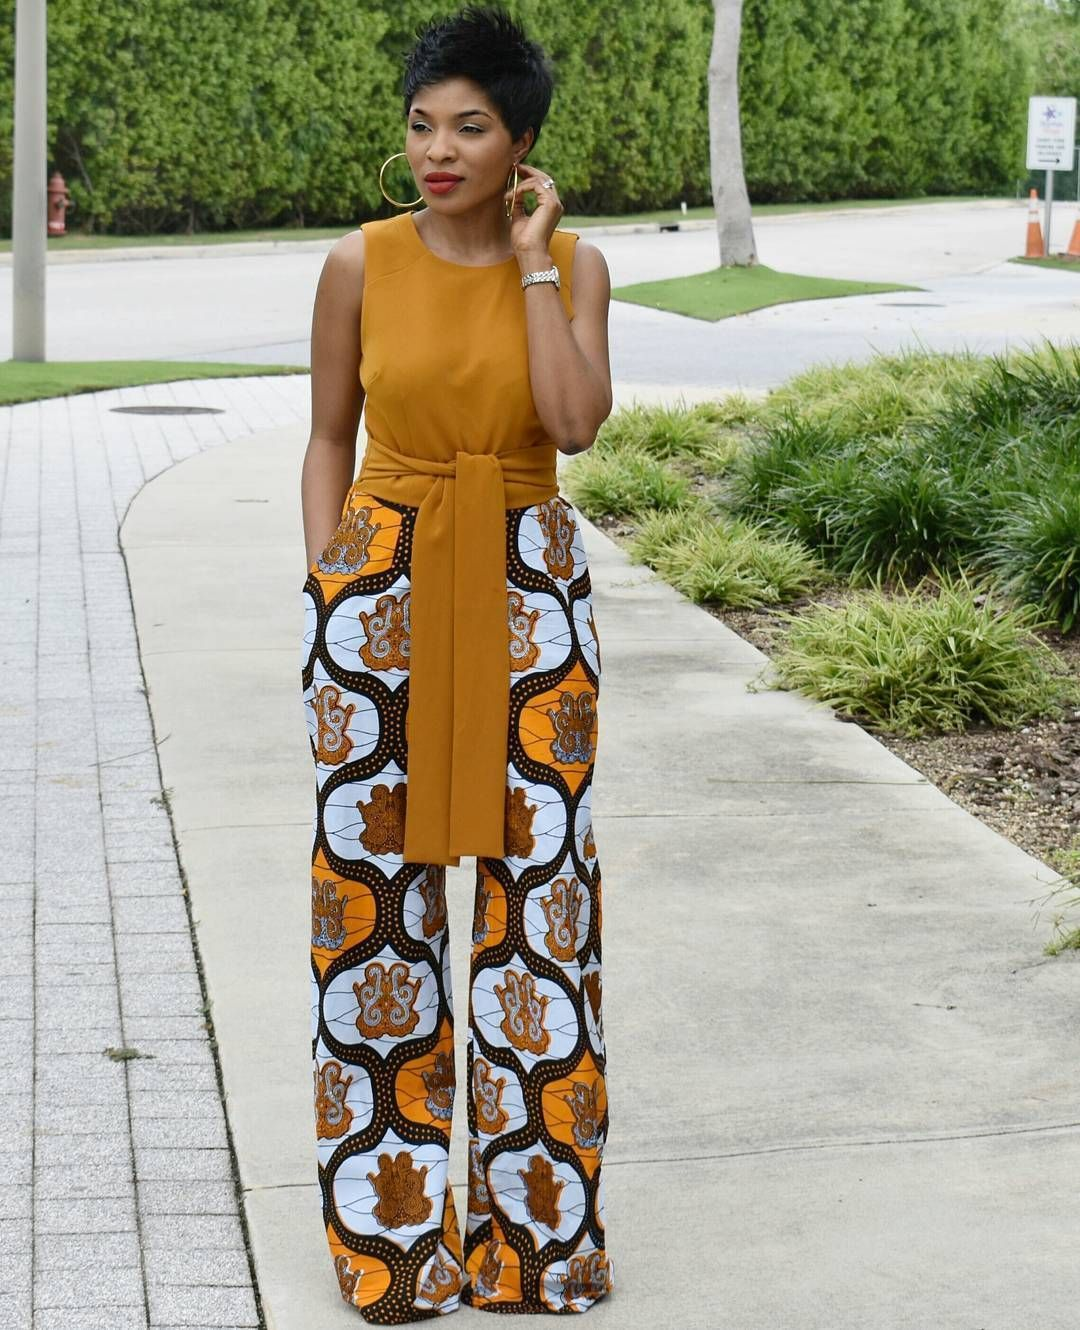 African Print Latest Styles Steal Fashionista Doopie - afrocosmopolitan #africanprintdresses